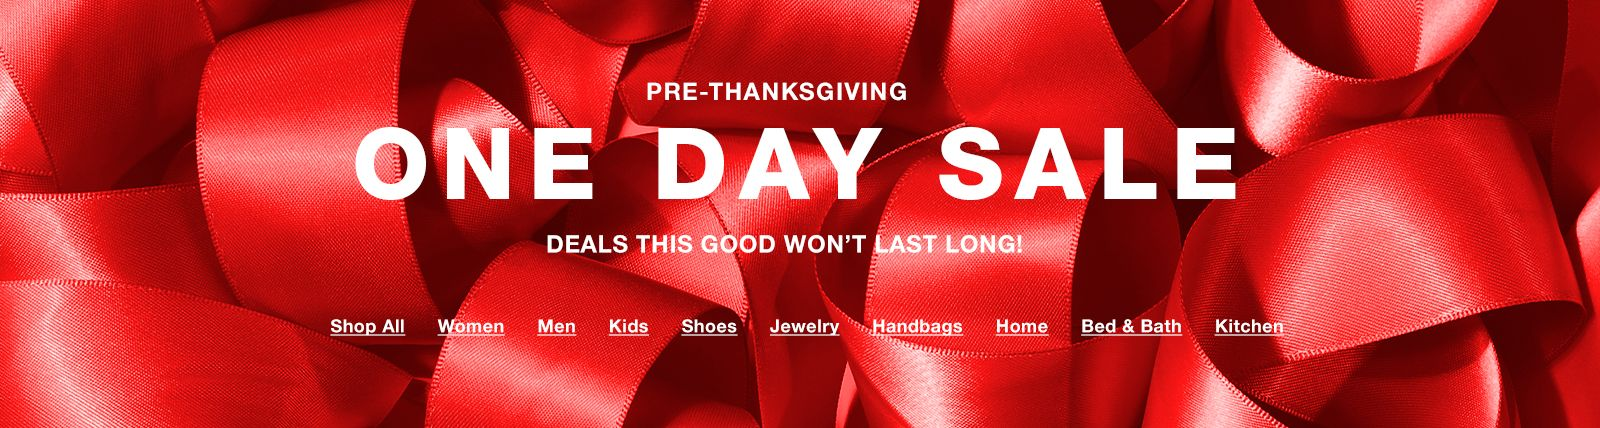 Pre-Thanksgiving, One Day Sale, Deals This Good Won't Last Long, Shop All, Women, Men, Kids, Shoes, Jewelry, Handbags, Home, Bed and Bath, Kitchen